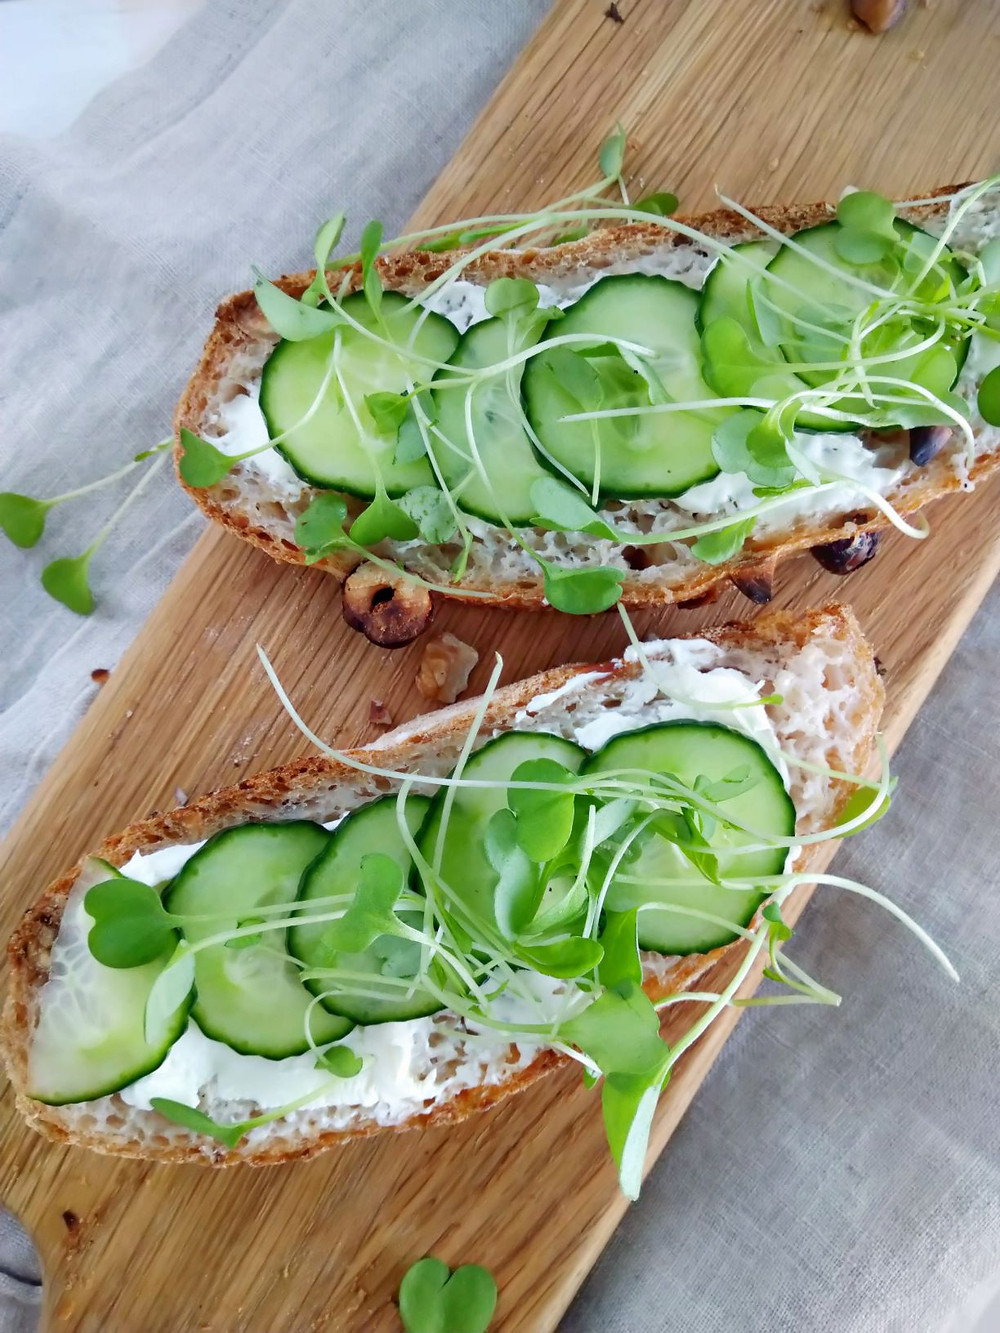 Gluten-free bread with cream cheese, cucumber slices and sprouts.